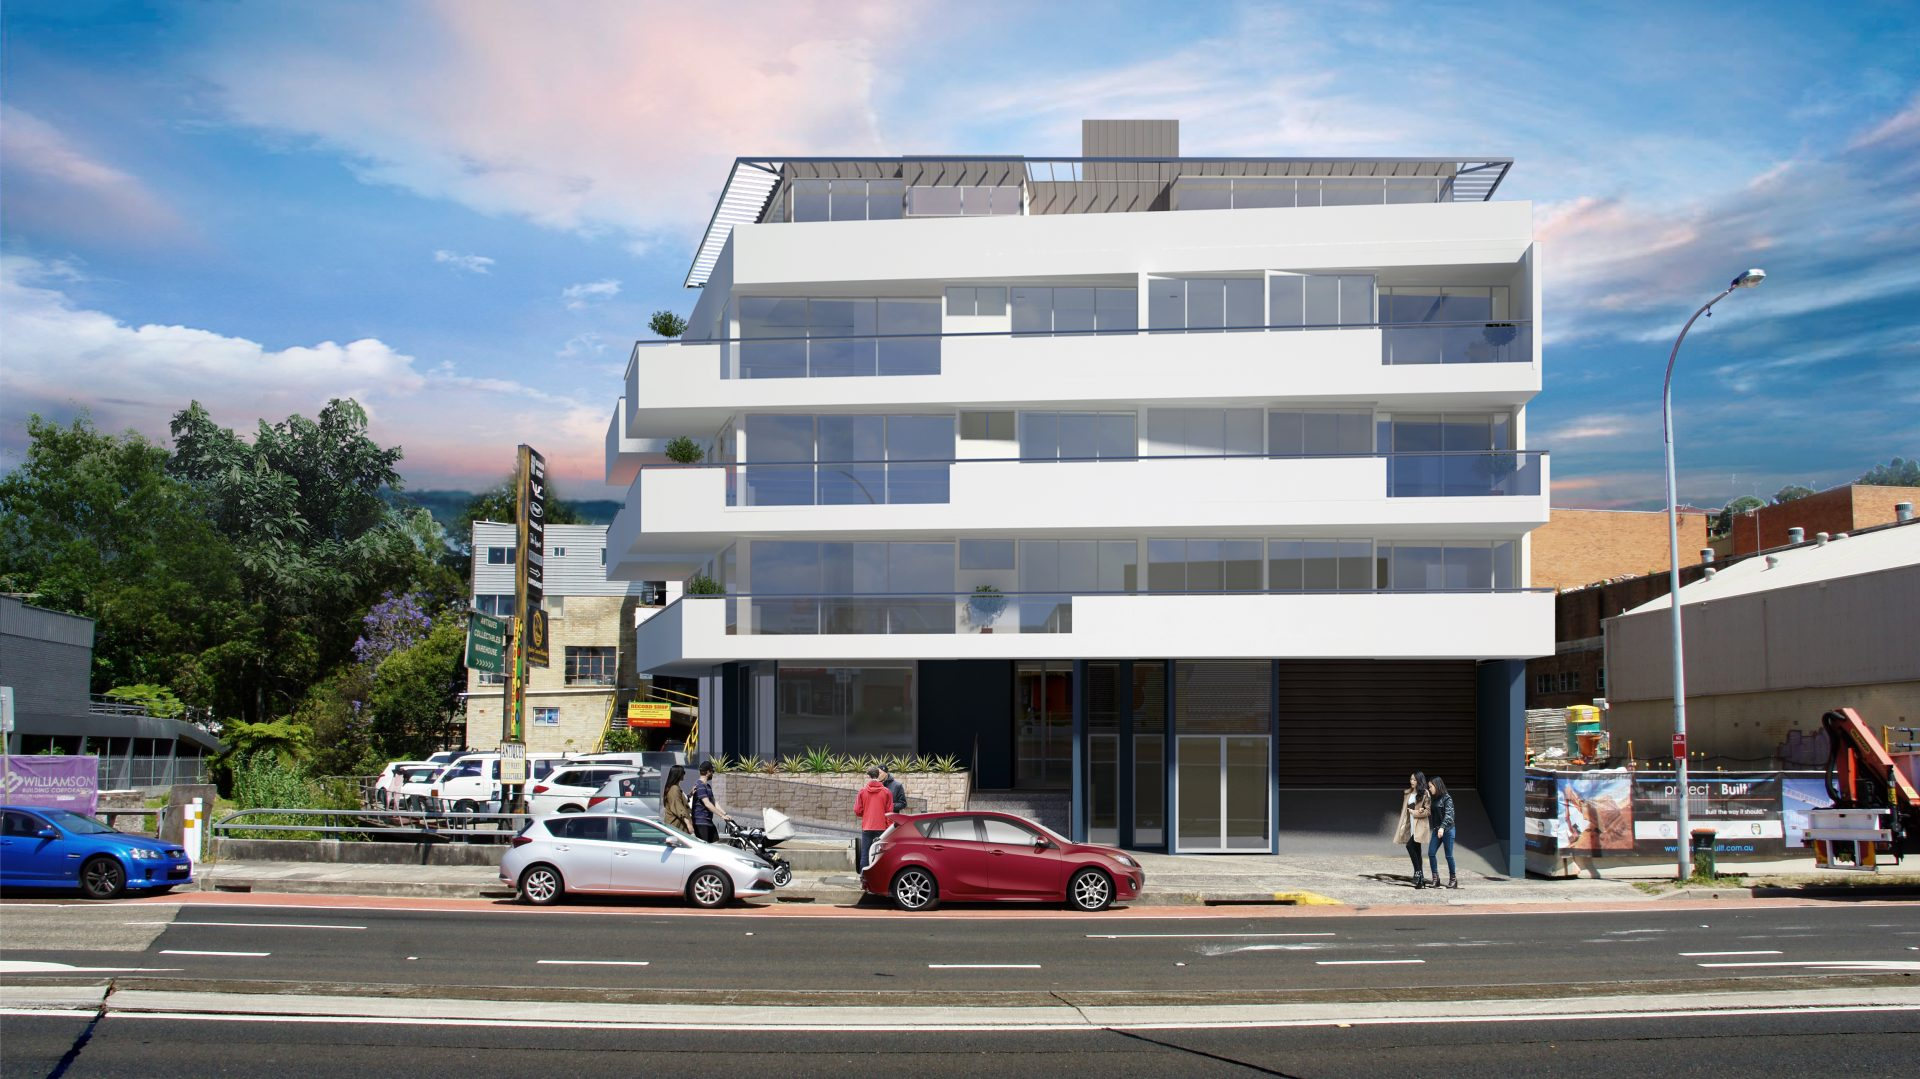 $200 Artists Impressions ph: 0407763976 admin@buildersbrochures.com.au